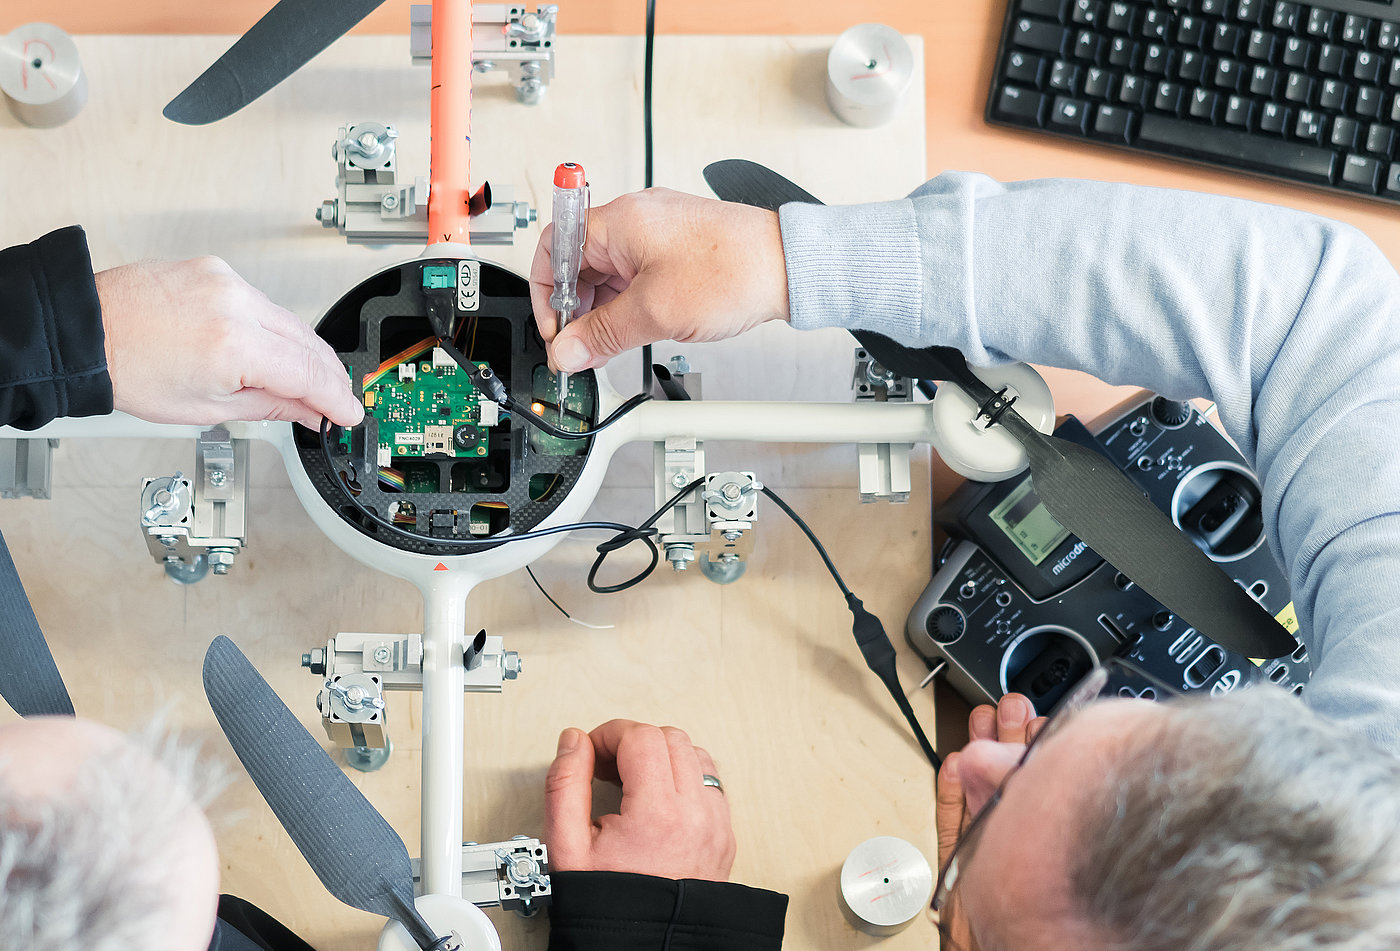 Microdrones engineers preparing md4-200 electronics for new mission